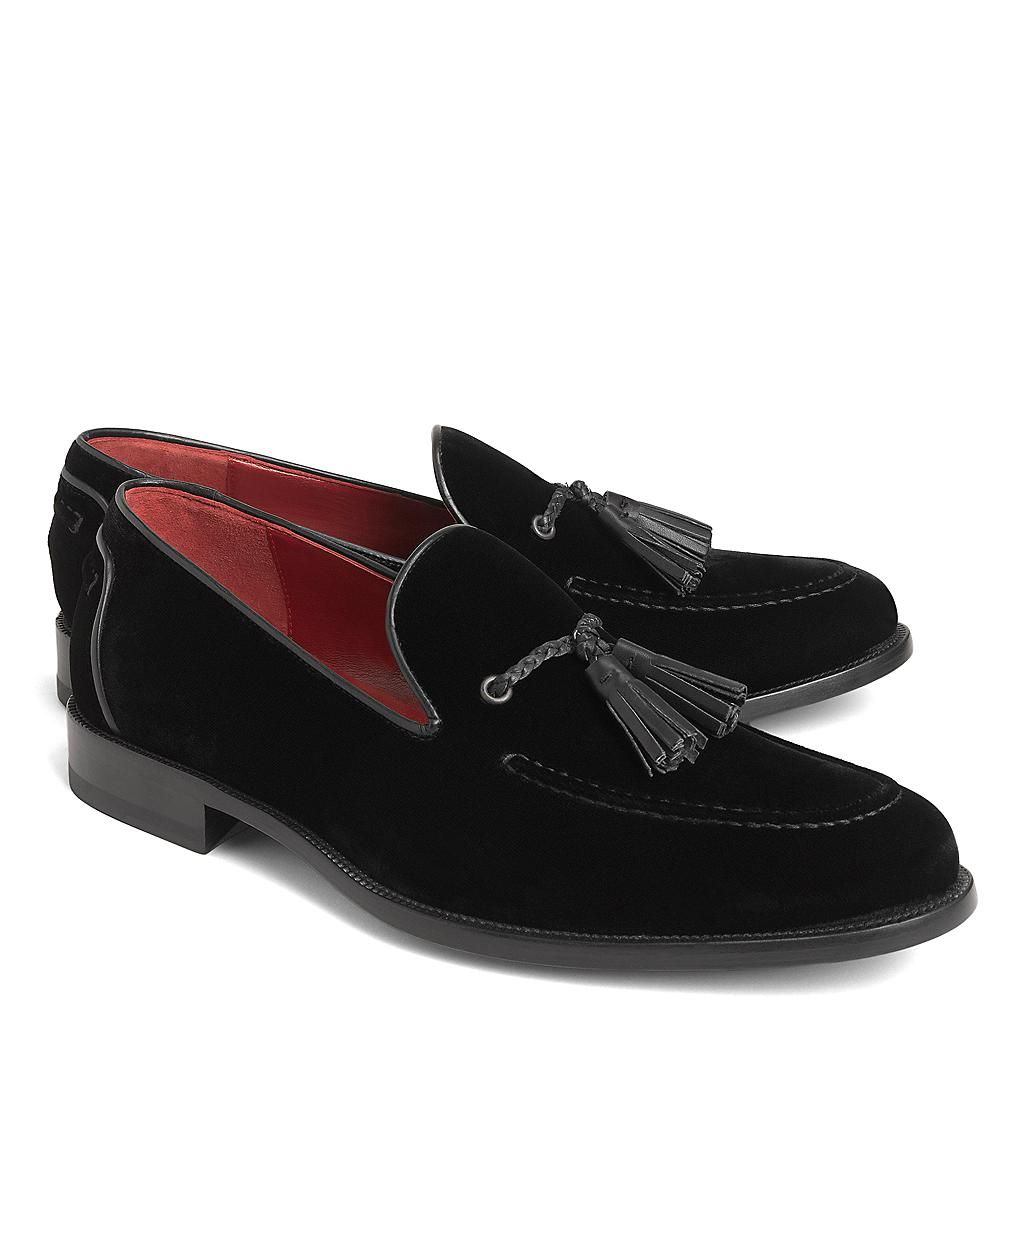 e2dc14cf845 Harrys of London Velvet Tassel Loafers